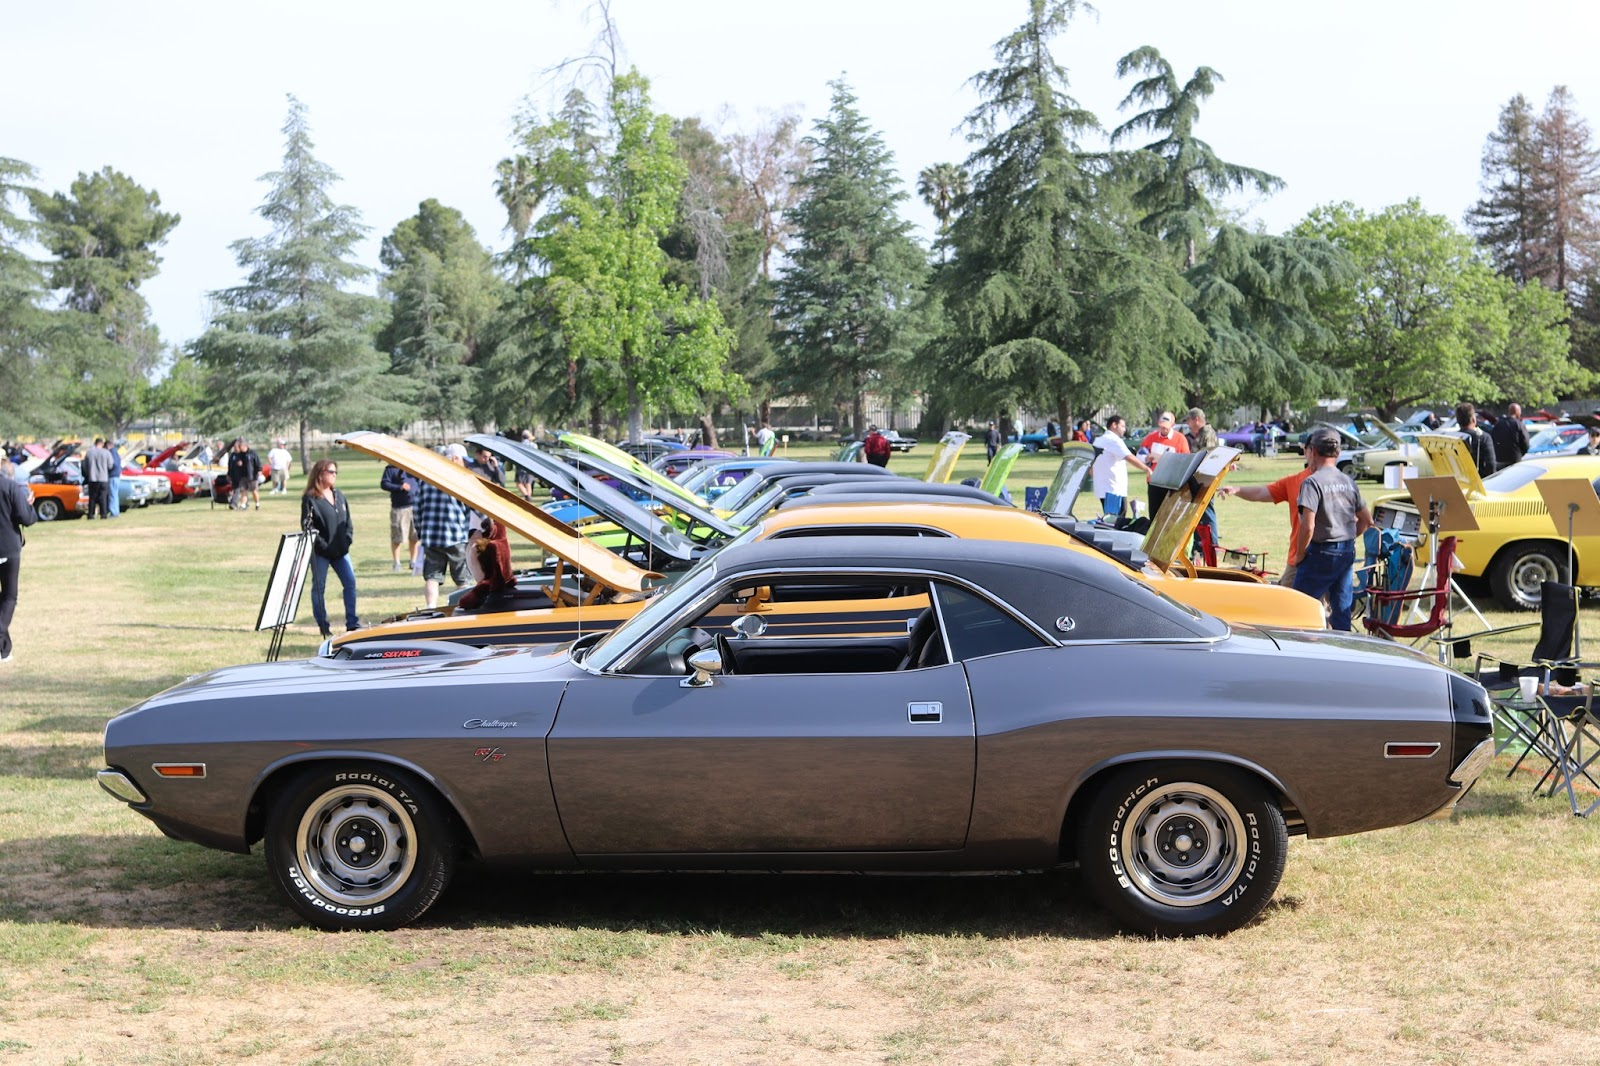 Covering Classic Cars : 31st Annual Mopar Spring Fling Hosted by ...